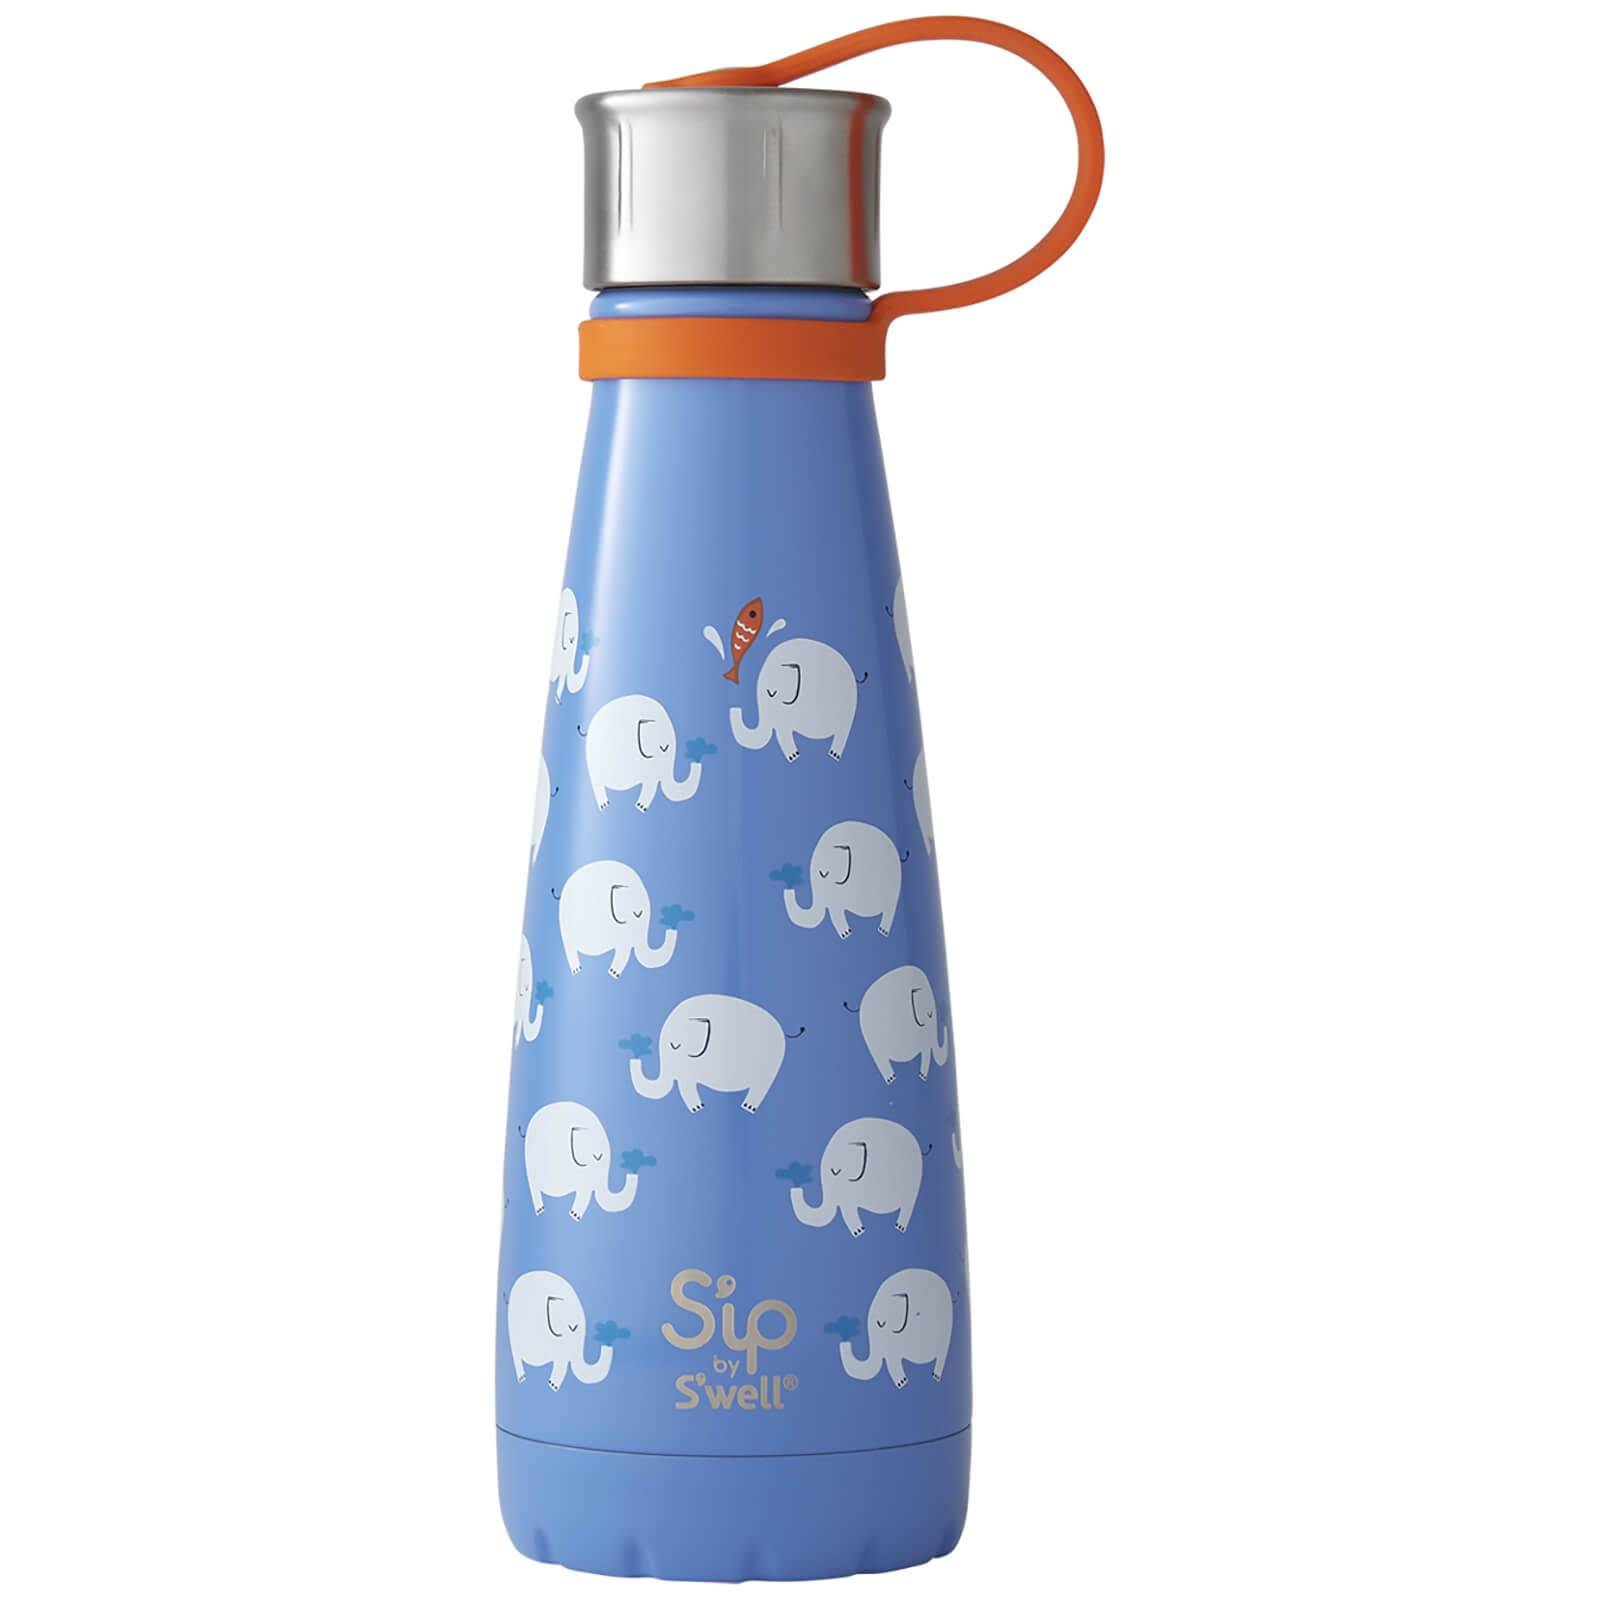 S'ip by S'well Bath Time Water Bottle 295ml